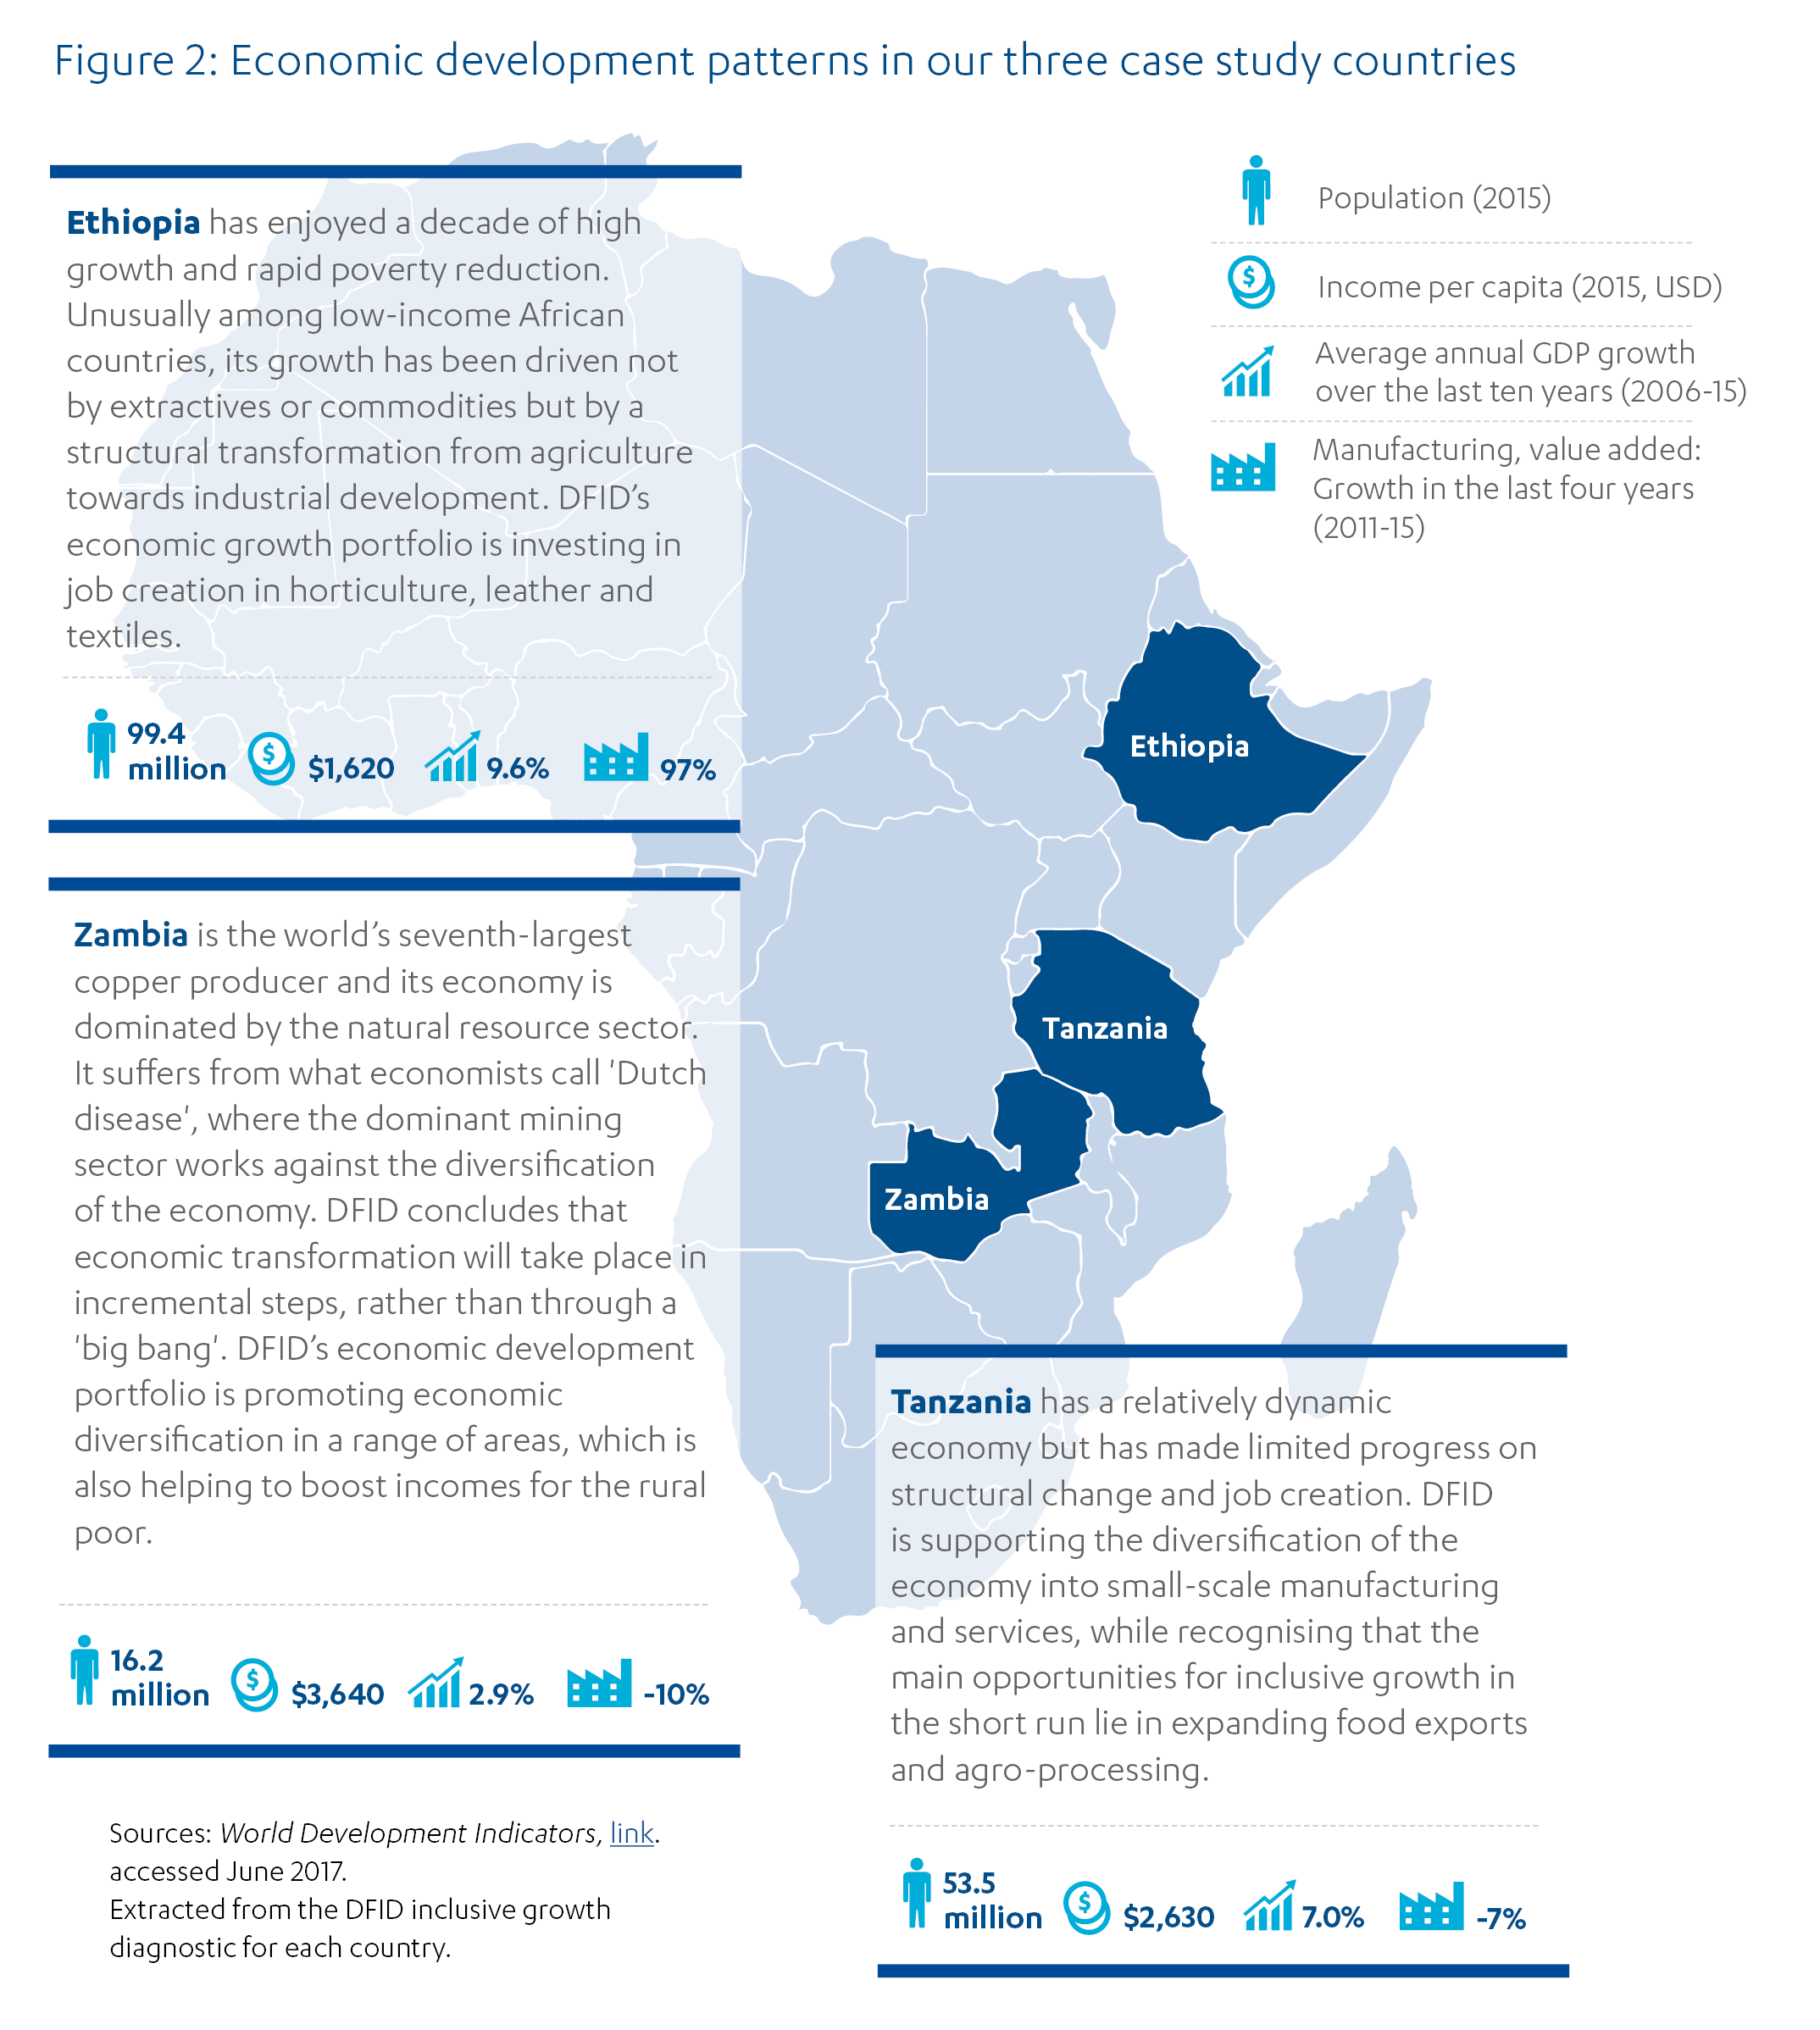 Map showing case study countries - Ethiopia, Zambia and Tanzania - containing stats economic development patterns.